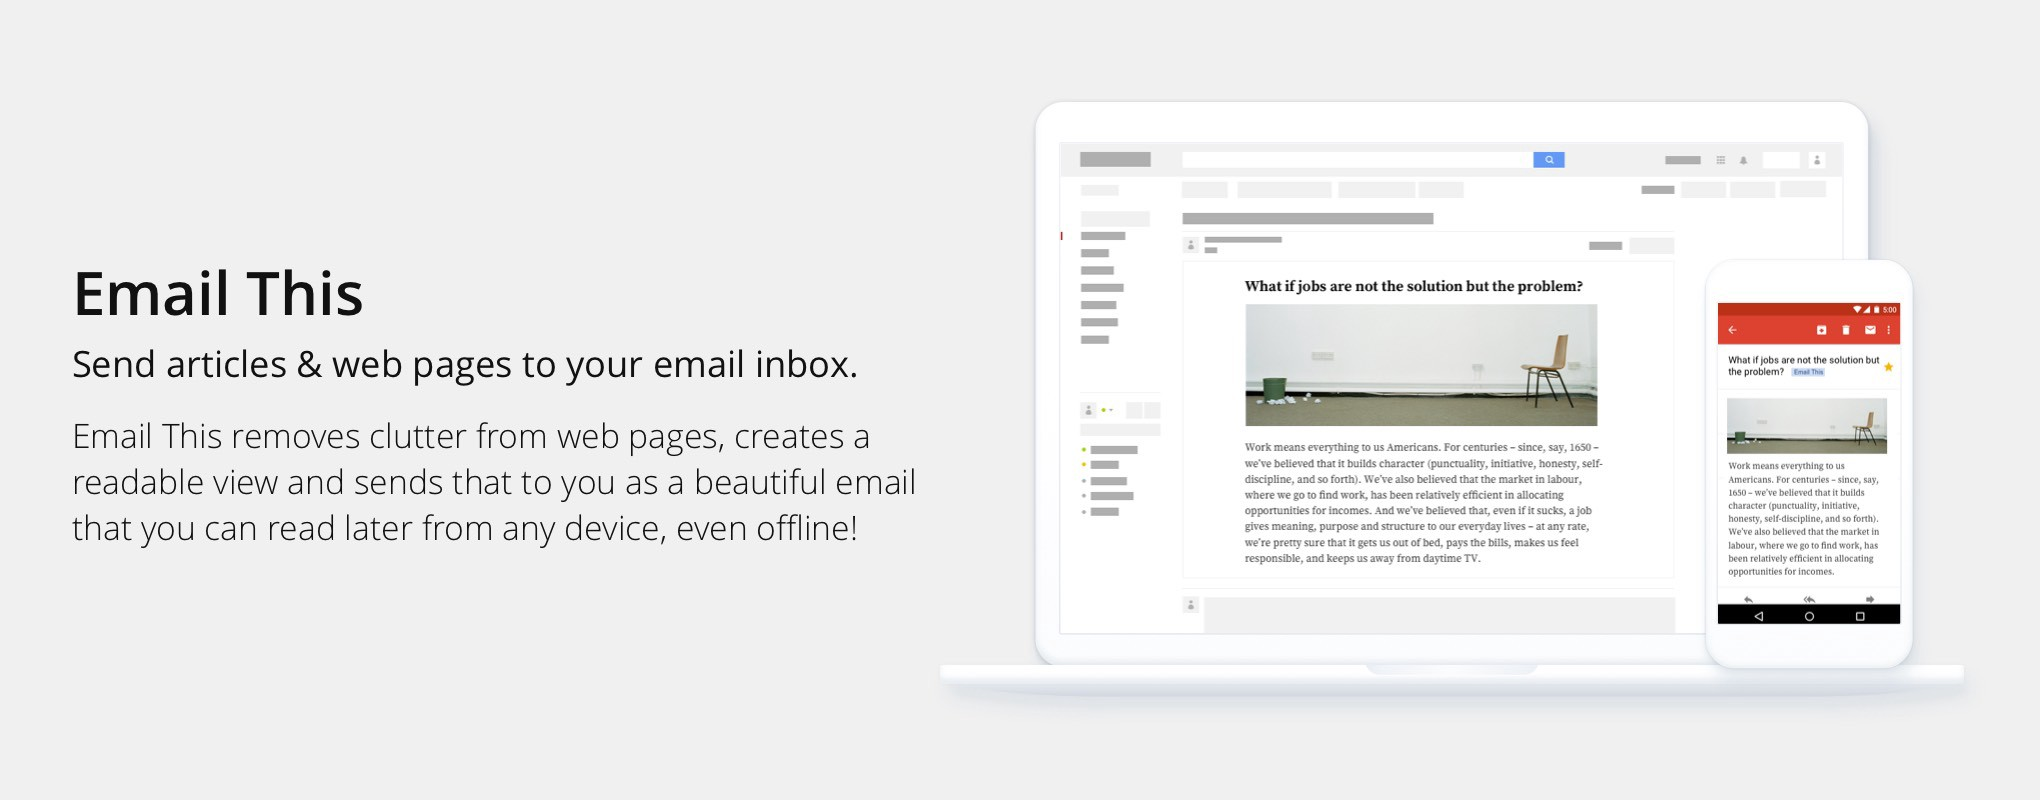 Introducing Email This — Send ad-free articles to your email